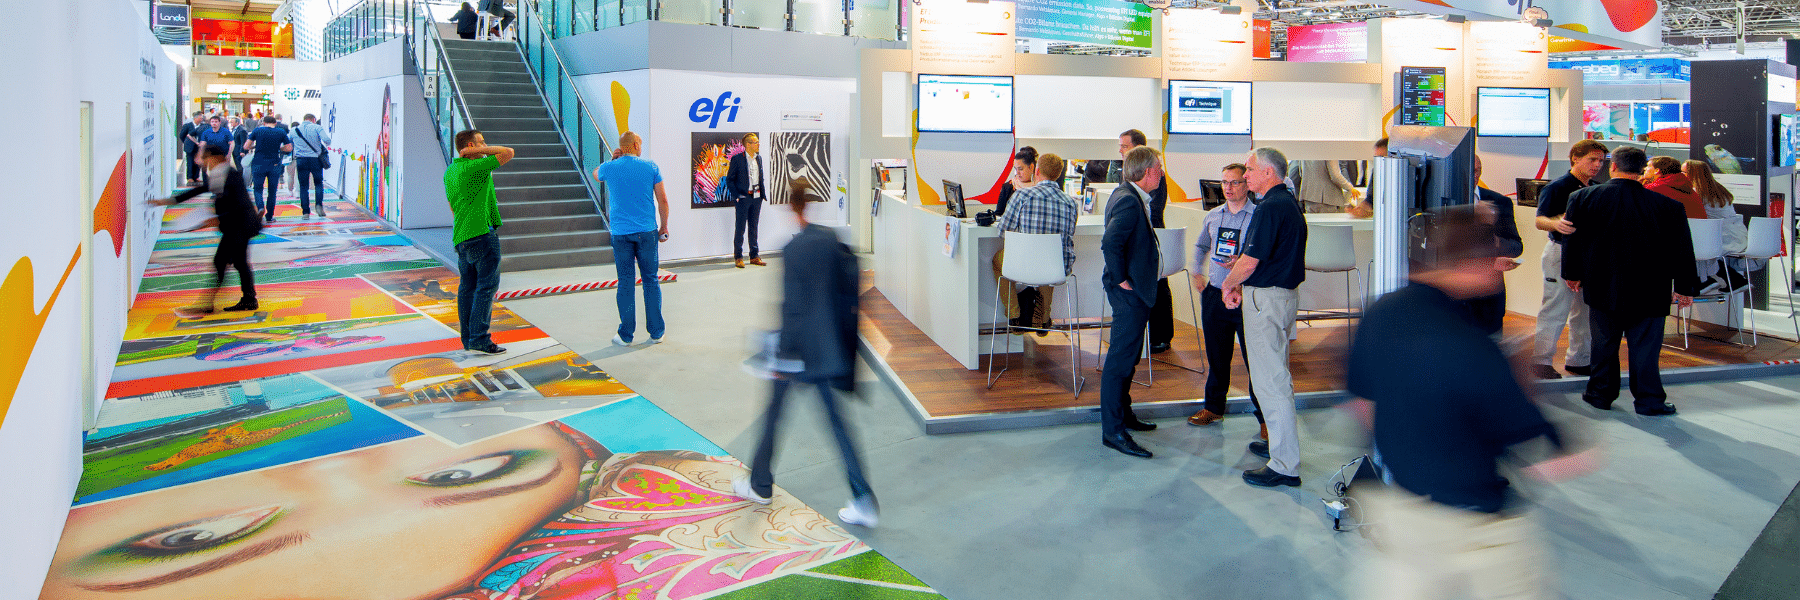 People walking through booths on the EFI Drupa show floor